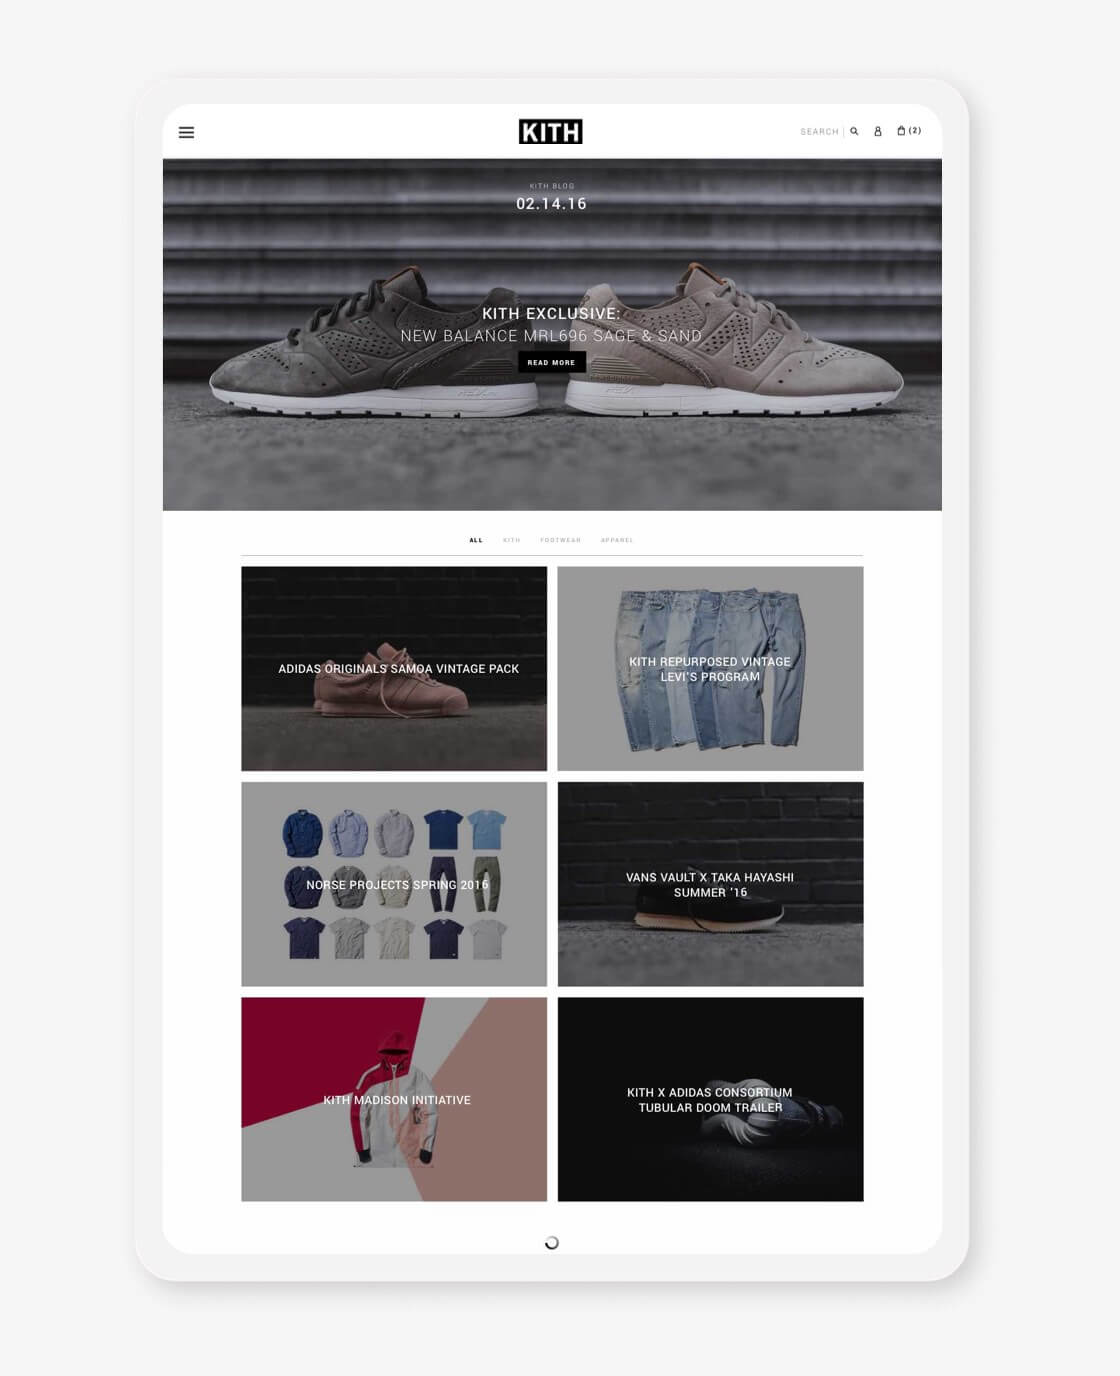 kith website blog landing page on tablet